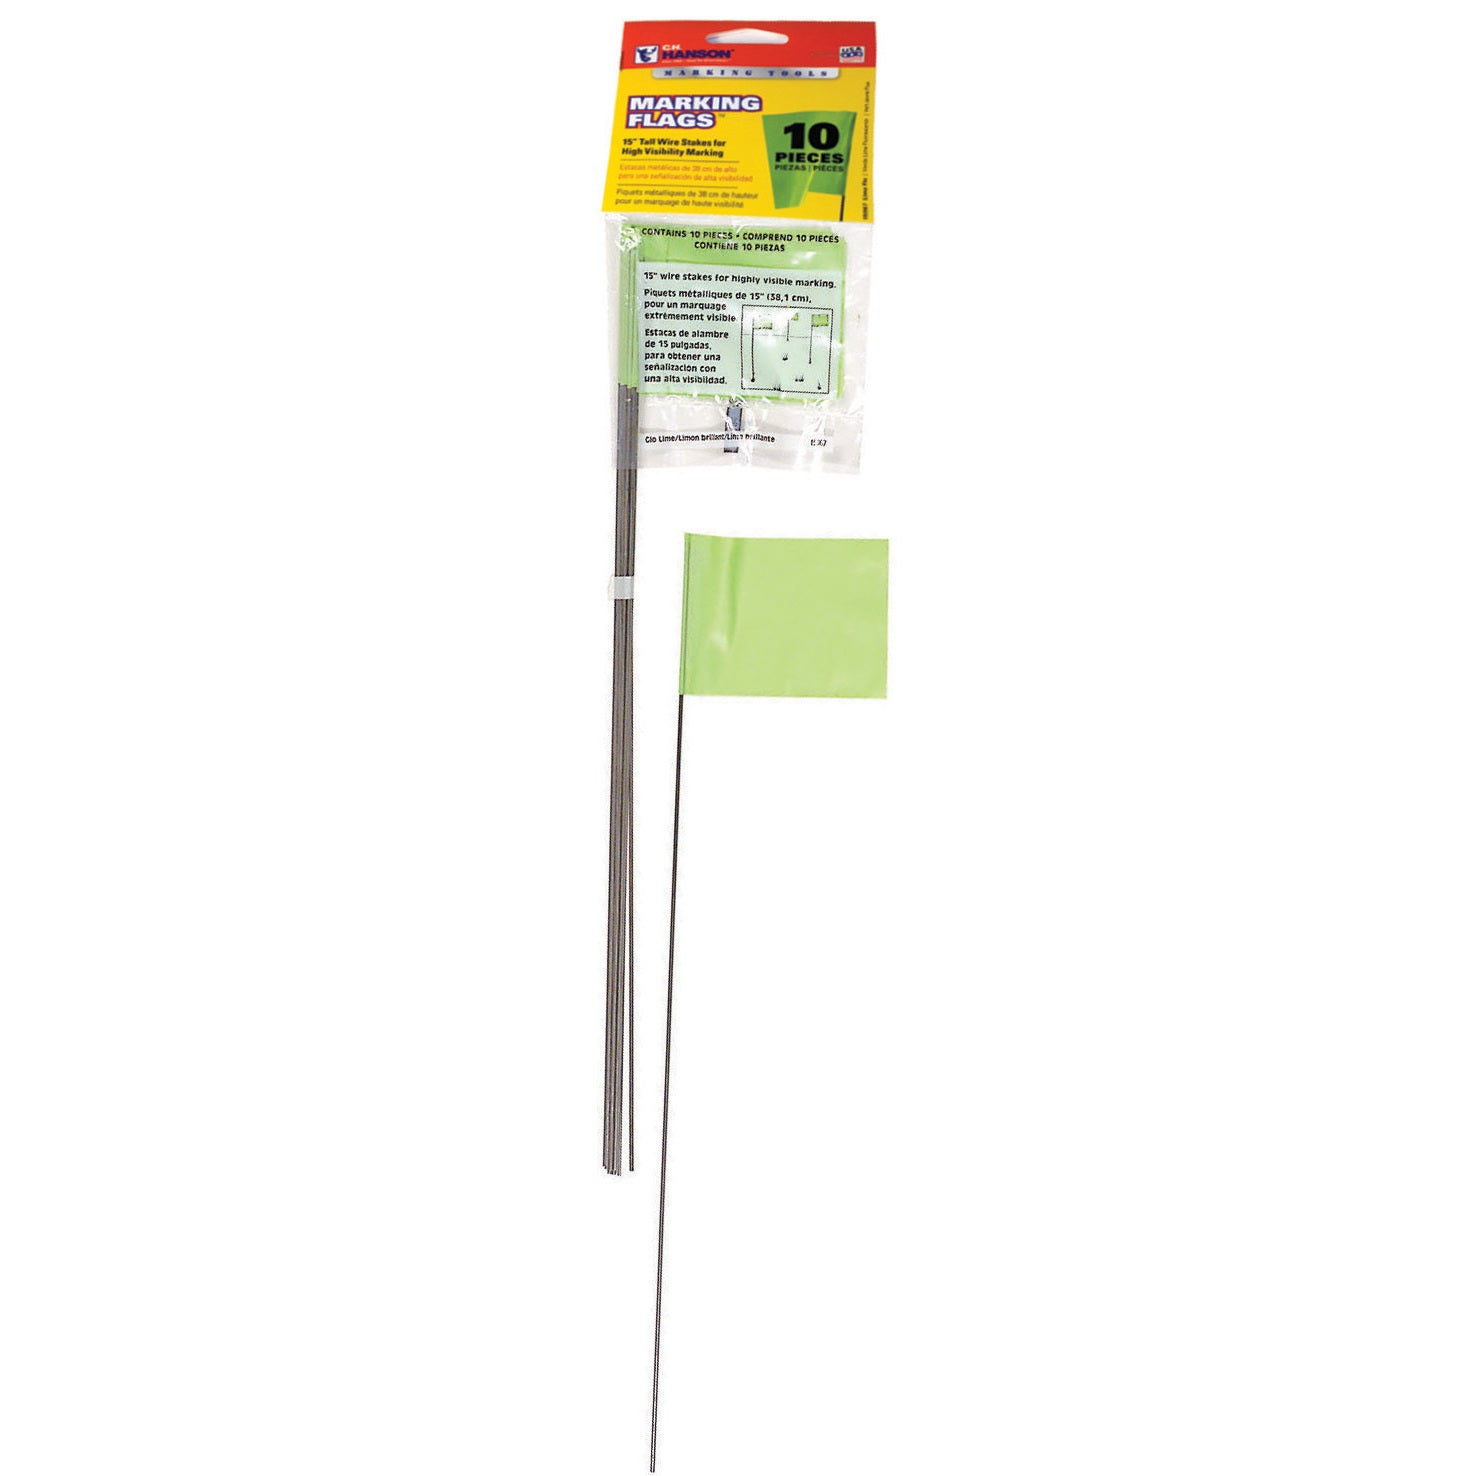 CH Hanson 15067 10 Pack Lime Marking Flags (Various tools)